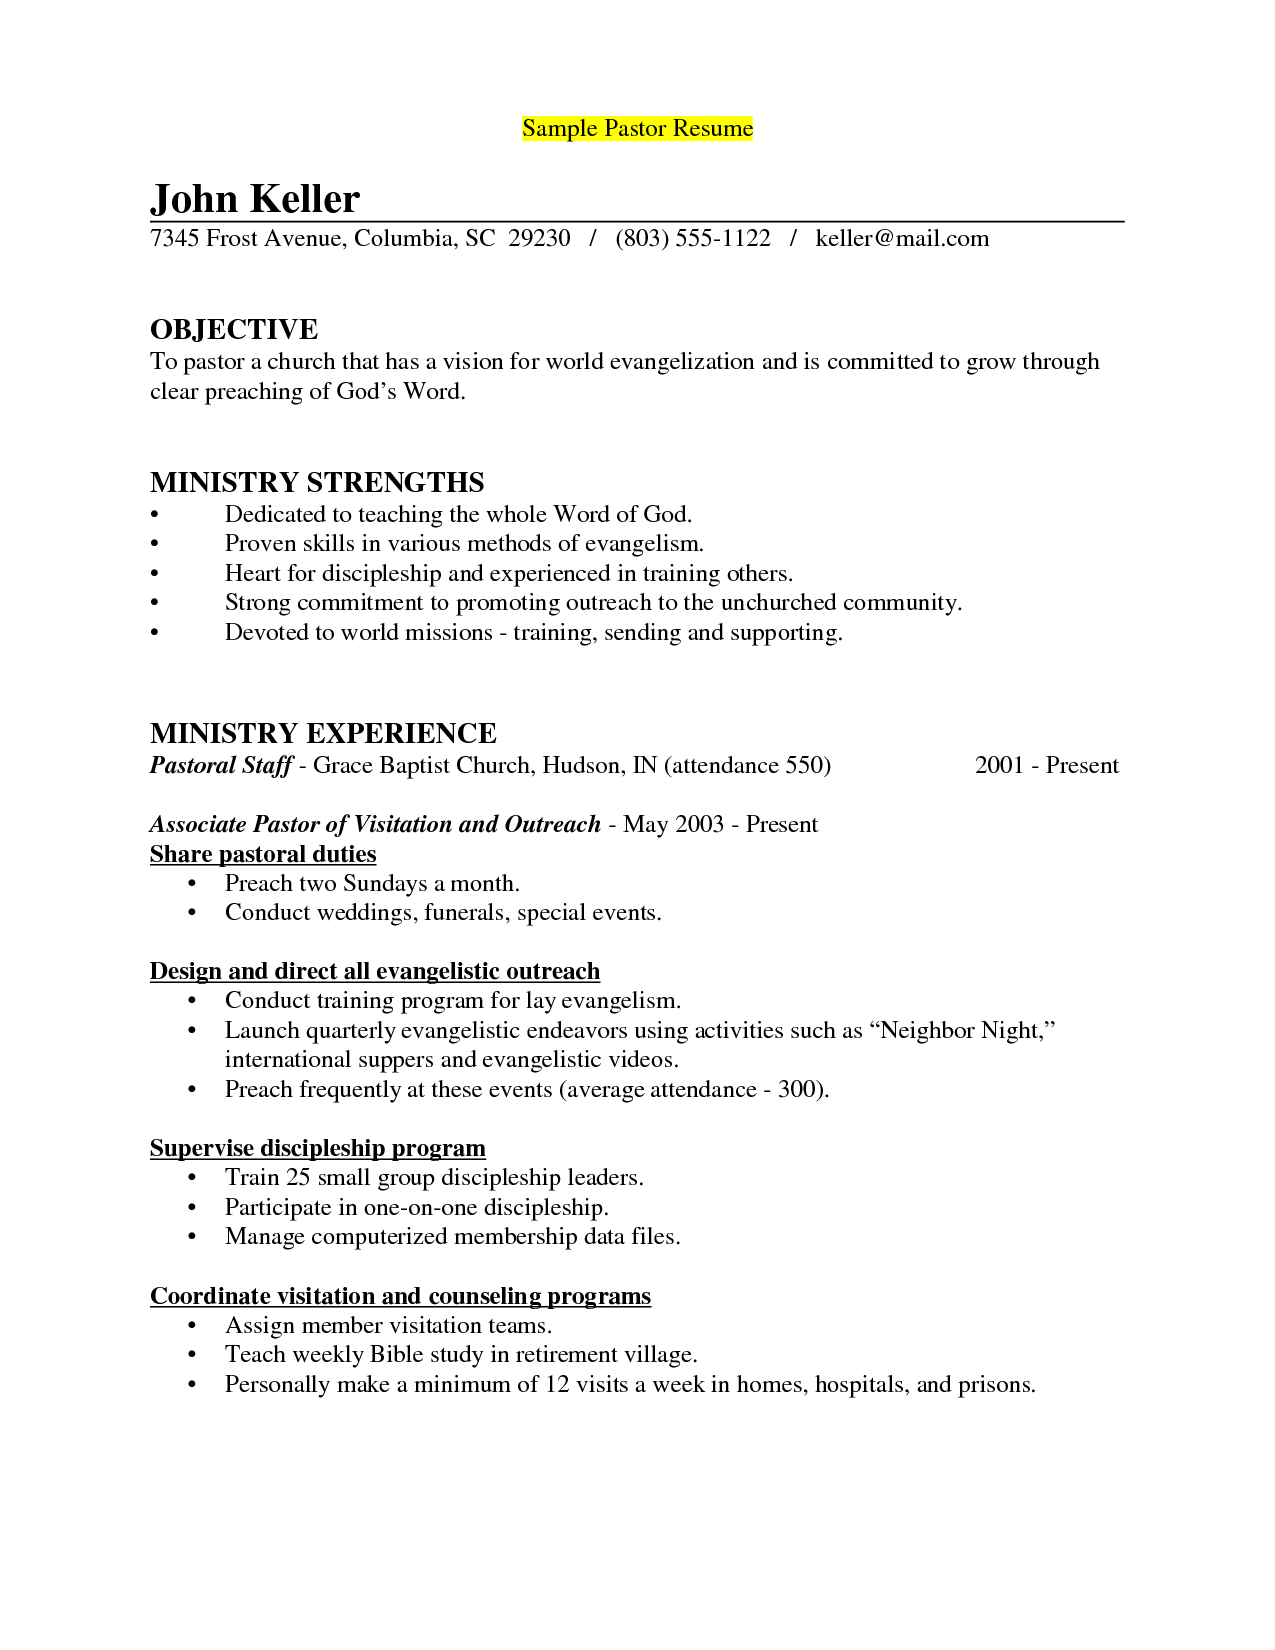 Sample Of A Pastors Resume